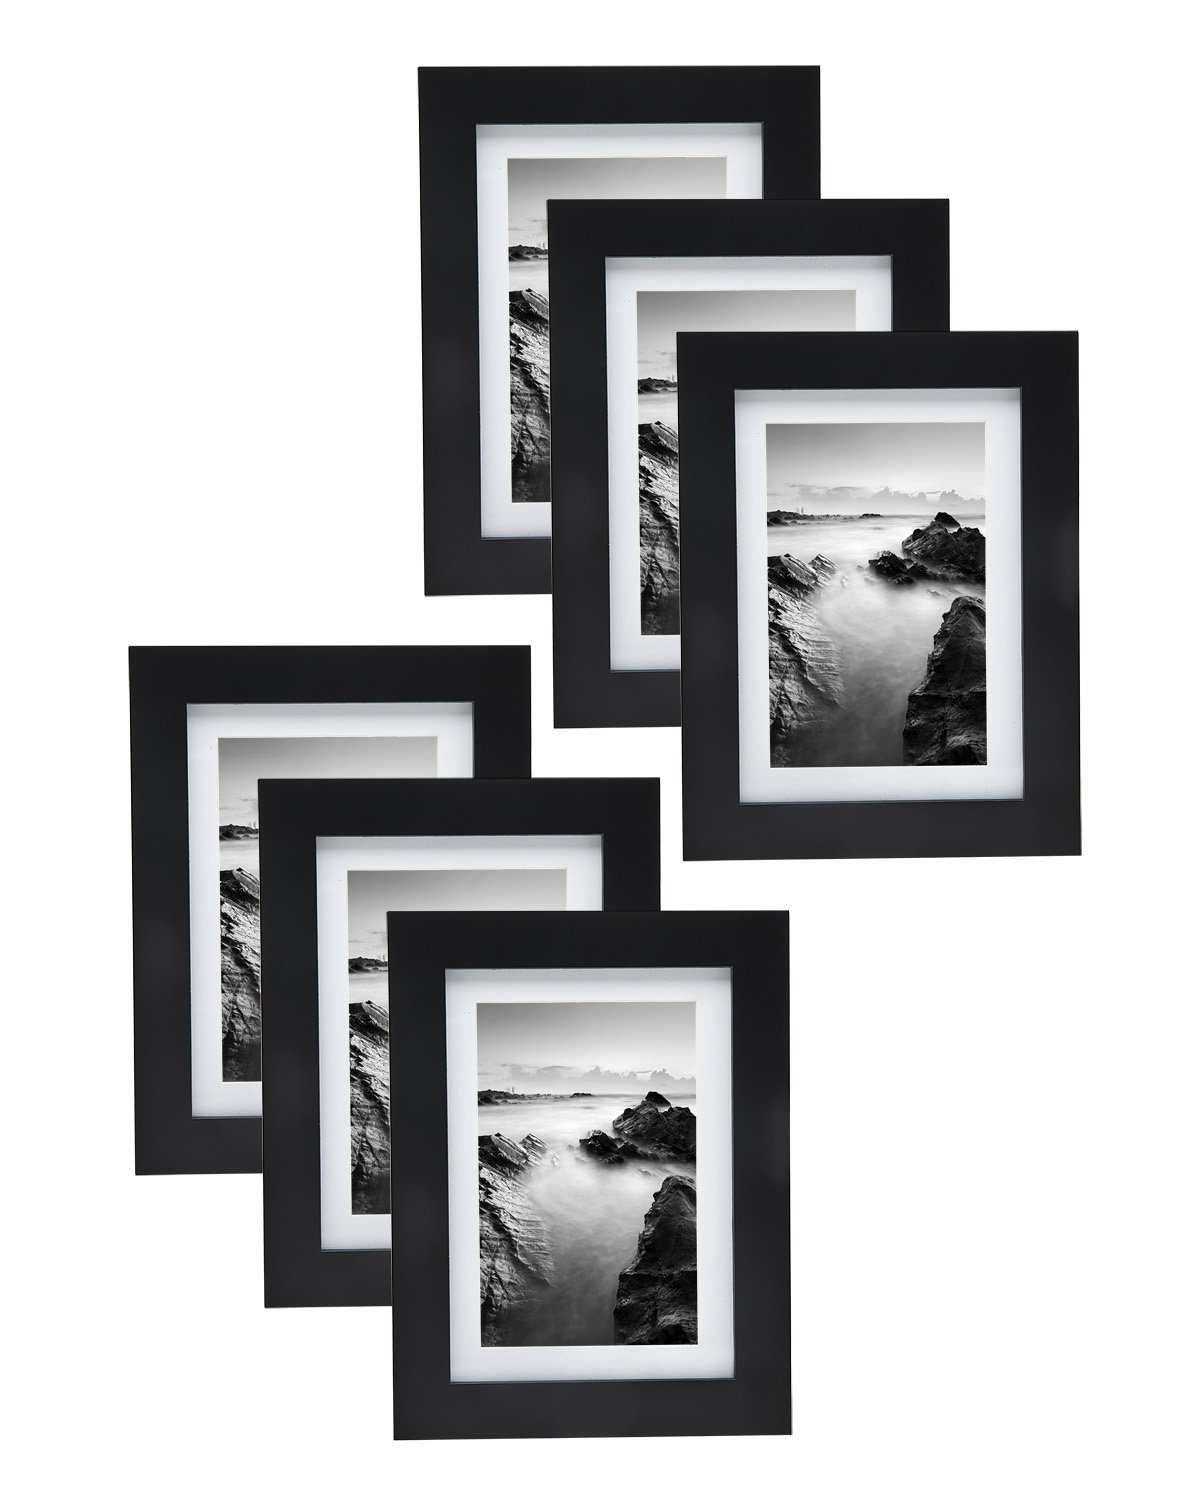 5x7 Wood Picture Frame Set- Display Photos 4x6 With Mat or 5x7 Without Mat - Set Of 6